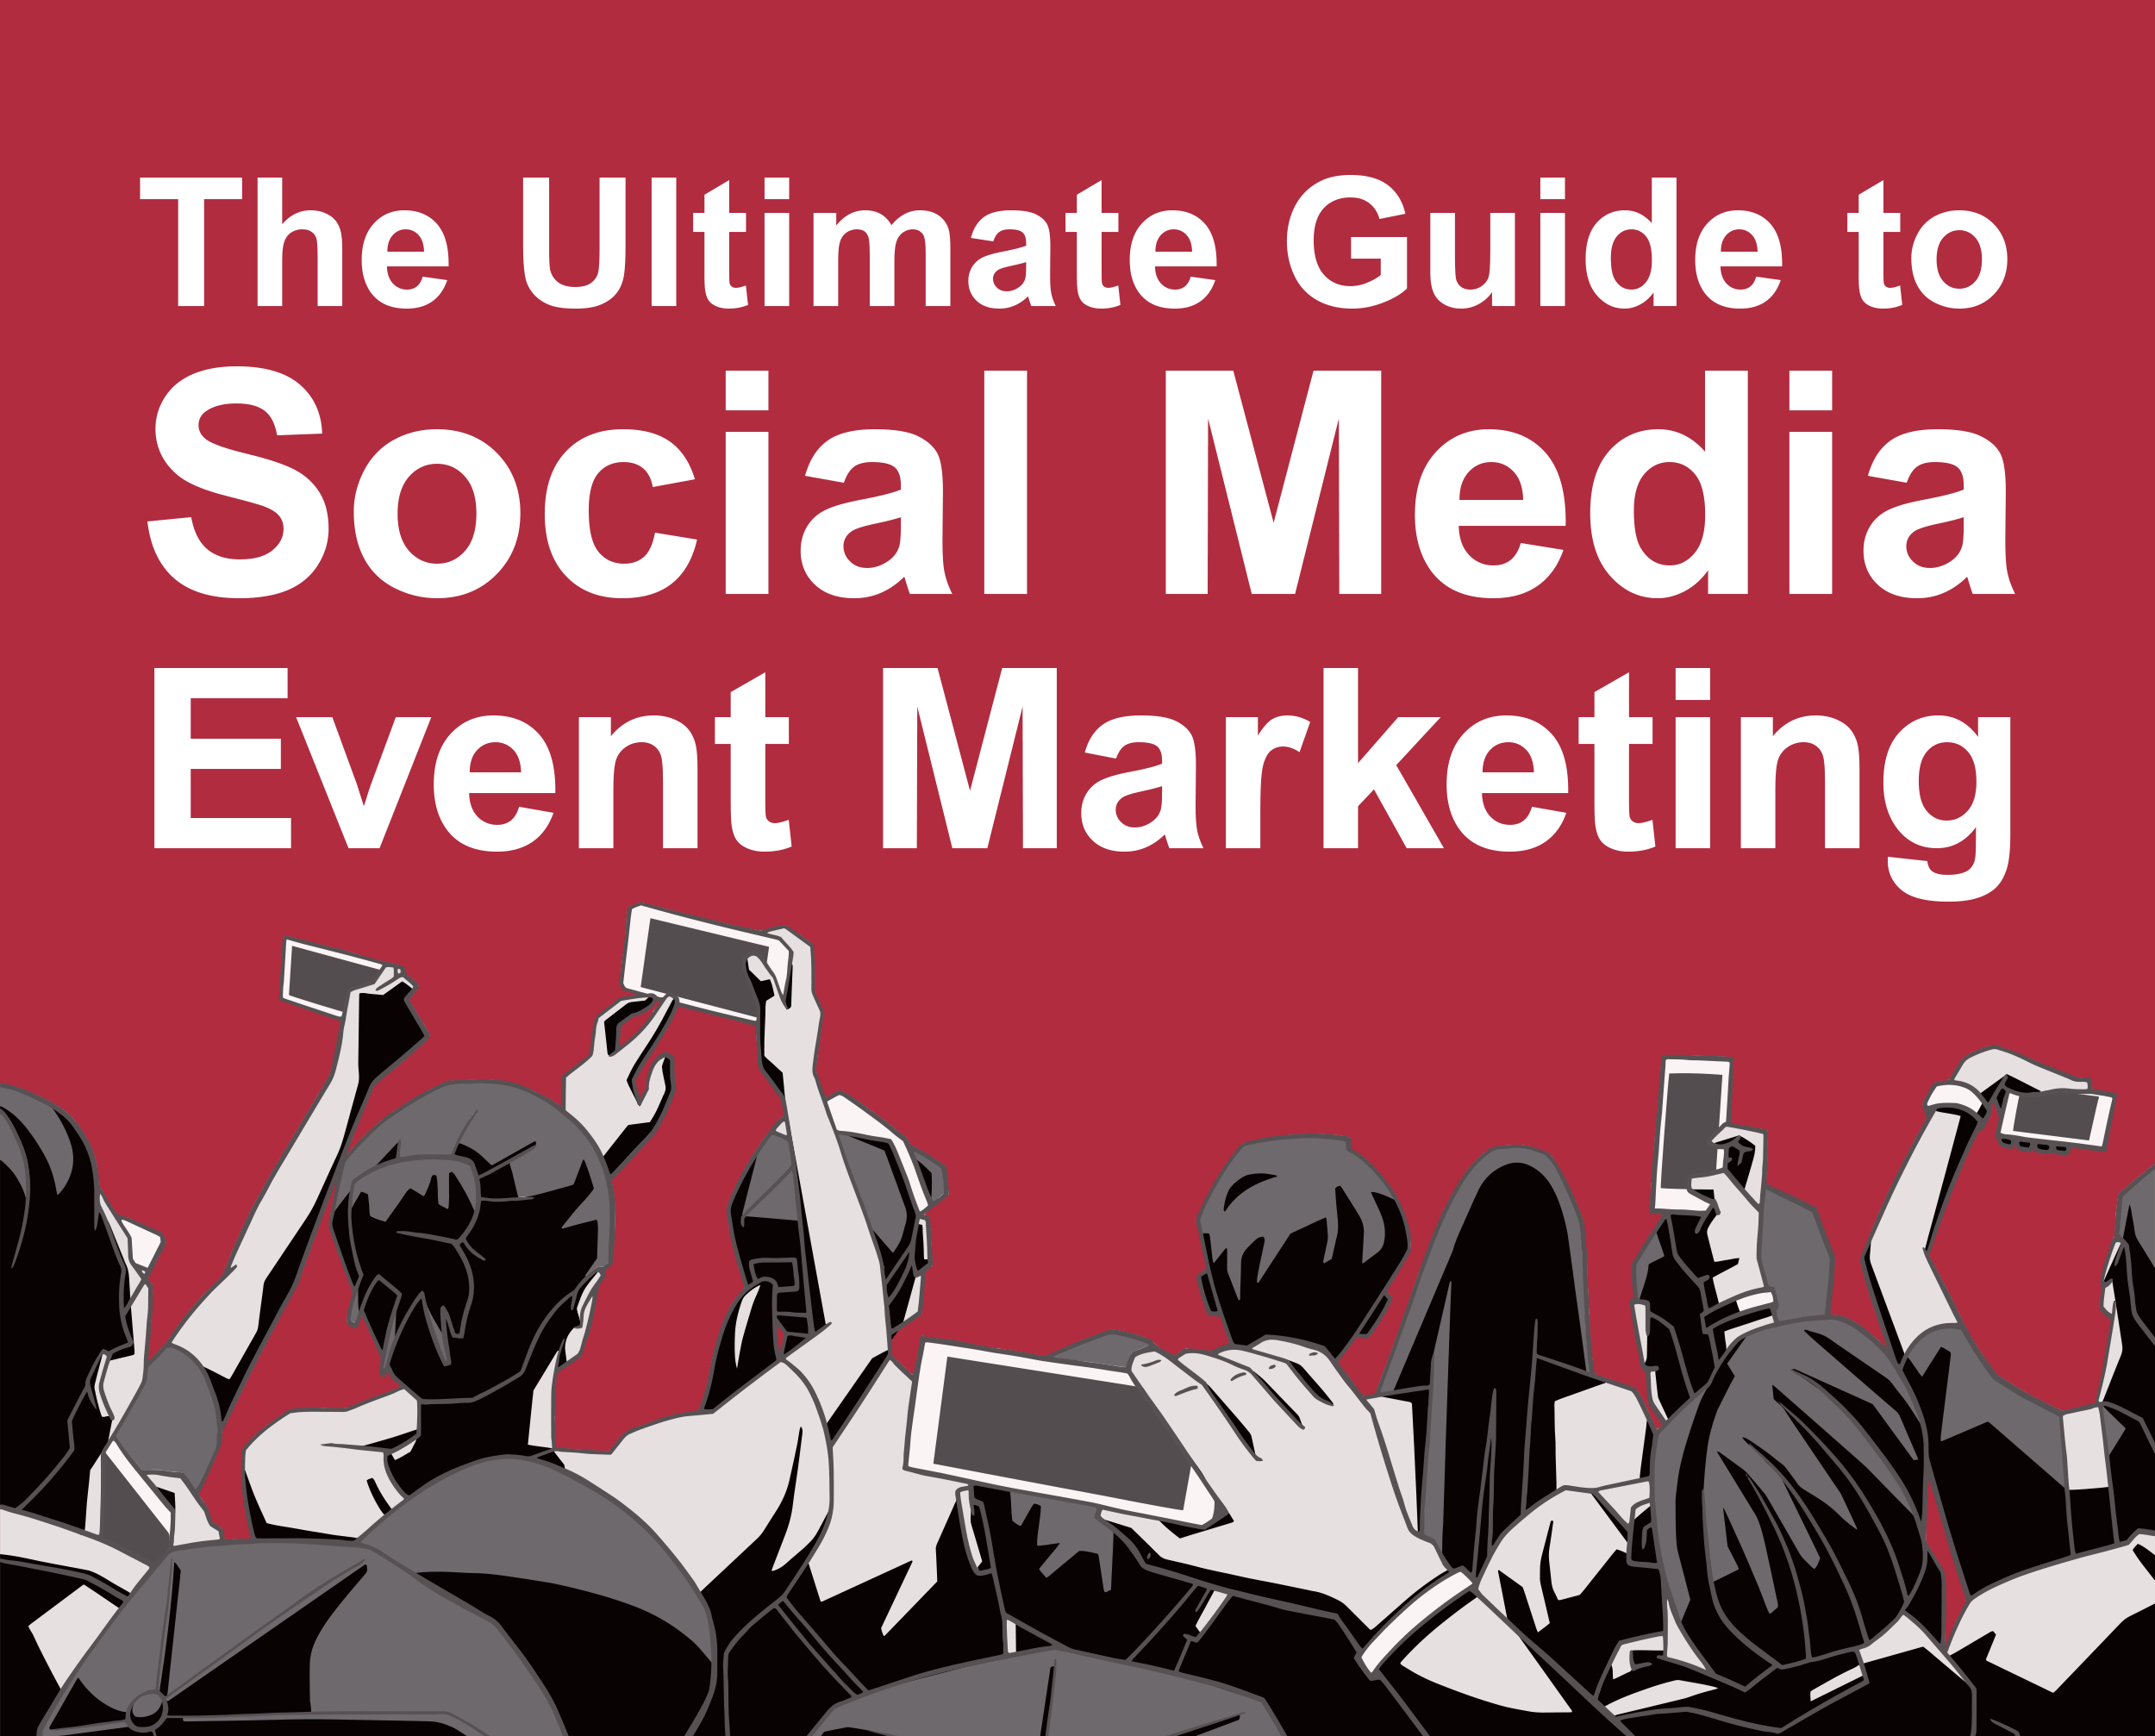 The Ultimate Guide To Social Media Event Marketing